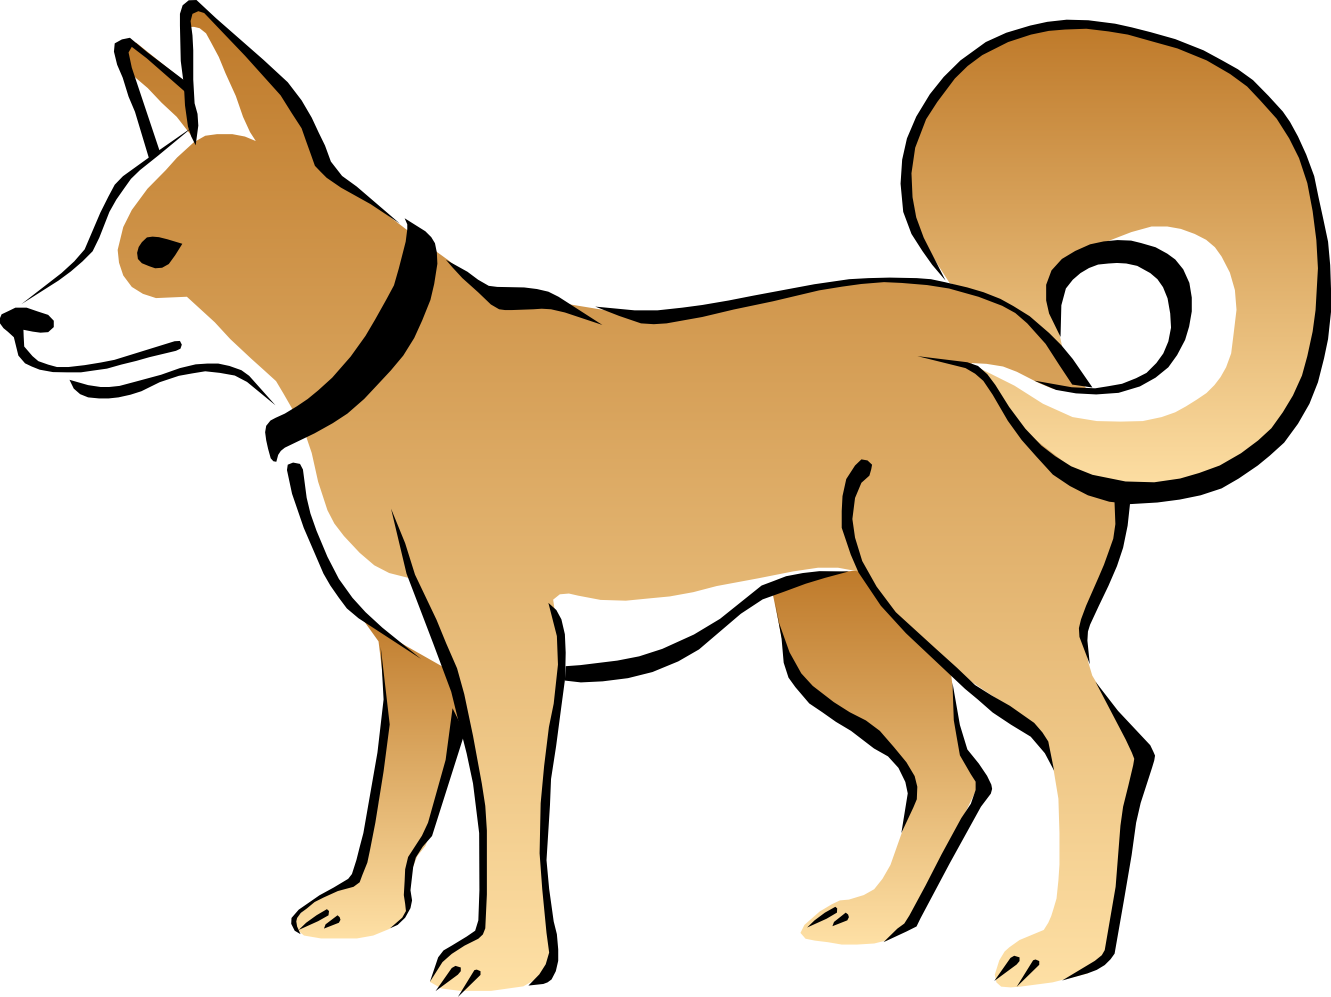 Dog growling clipart svg Dog png image, dogs, puppy pictures free download svg